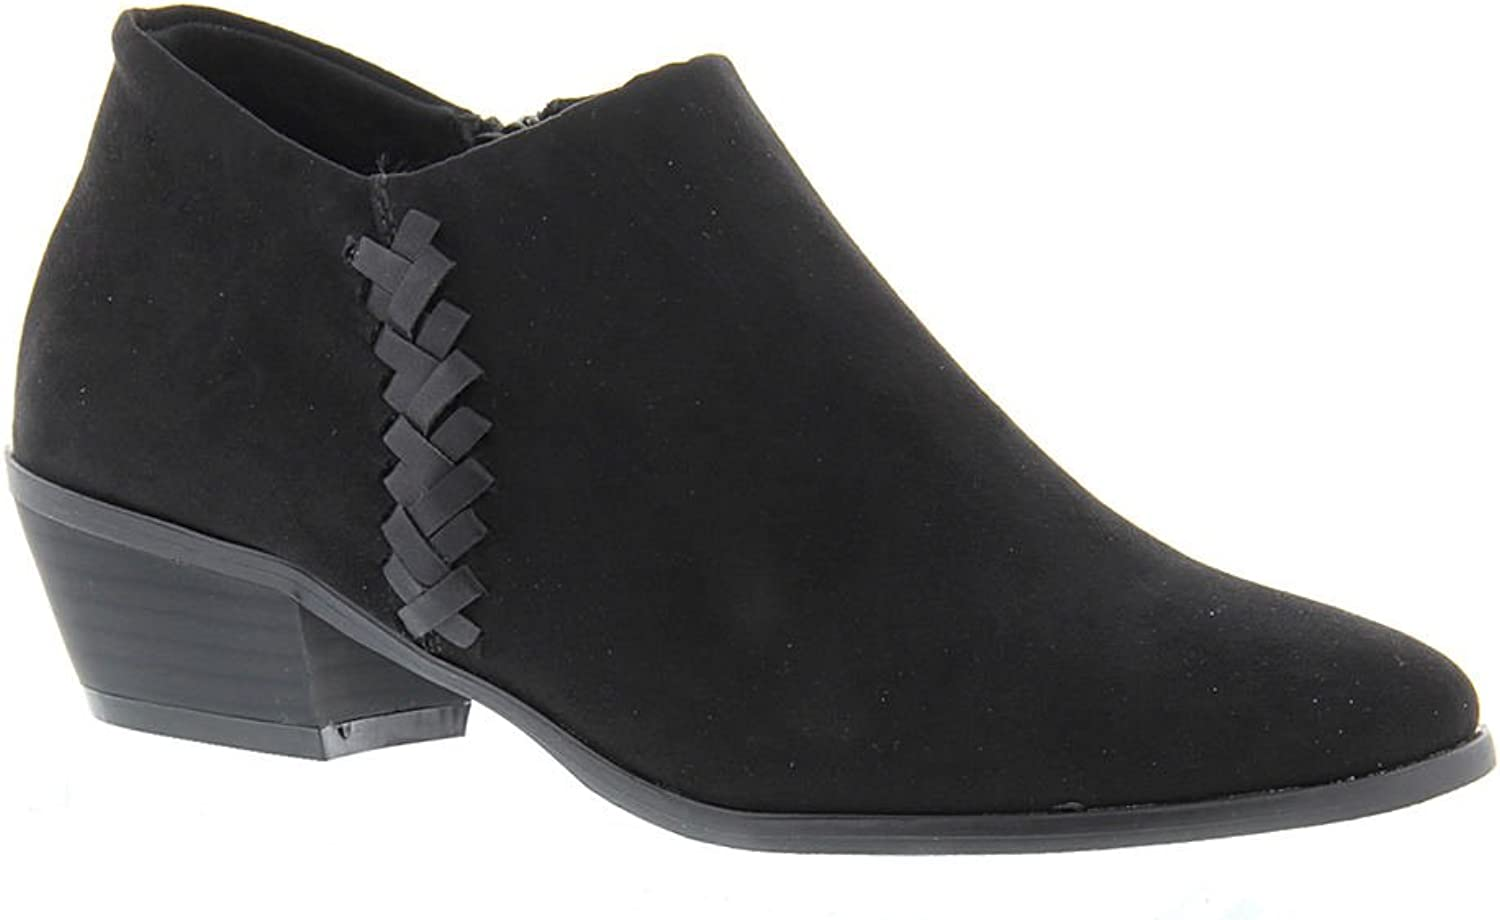 Madeline Womens Trefoil Suede Almond Toe Ankle Fashion Boots